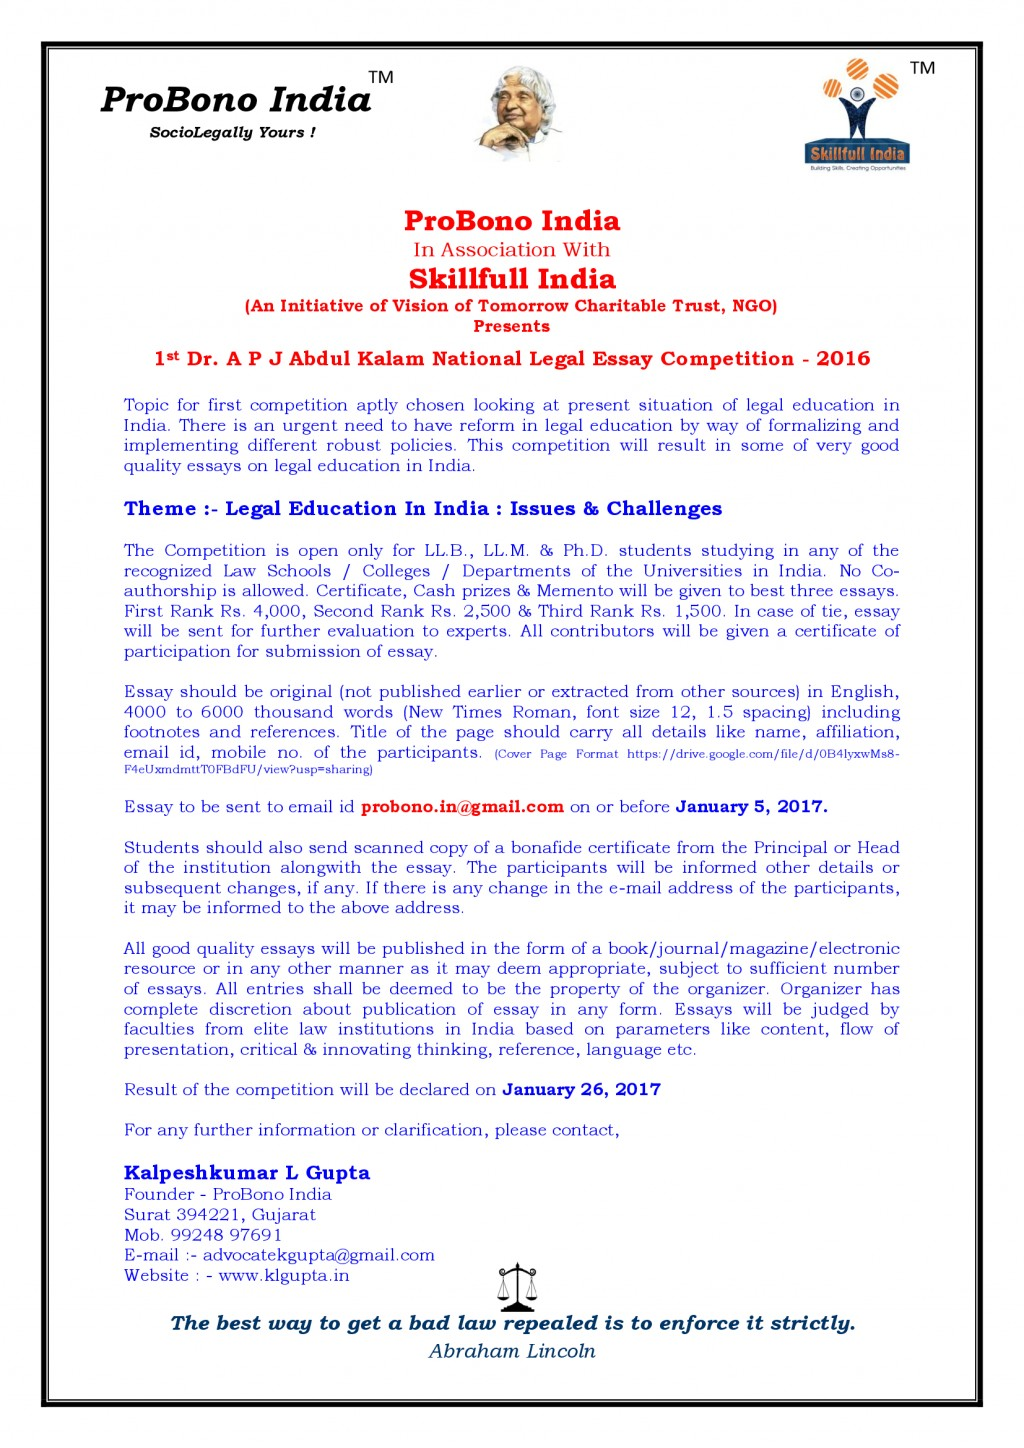 012 Essay Example Font Size 1st Dr P J Abdul Kalam National Level Competition With Skillfull Stunning Format College Apa Large